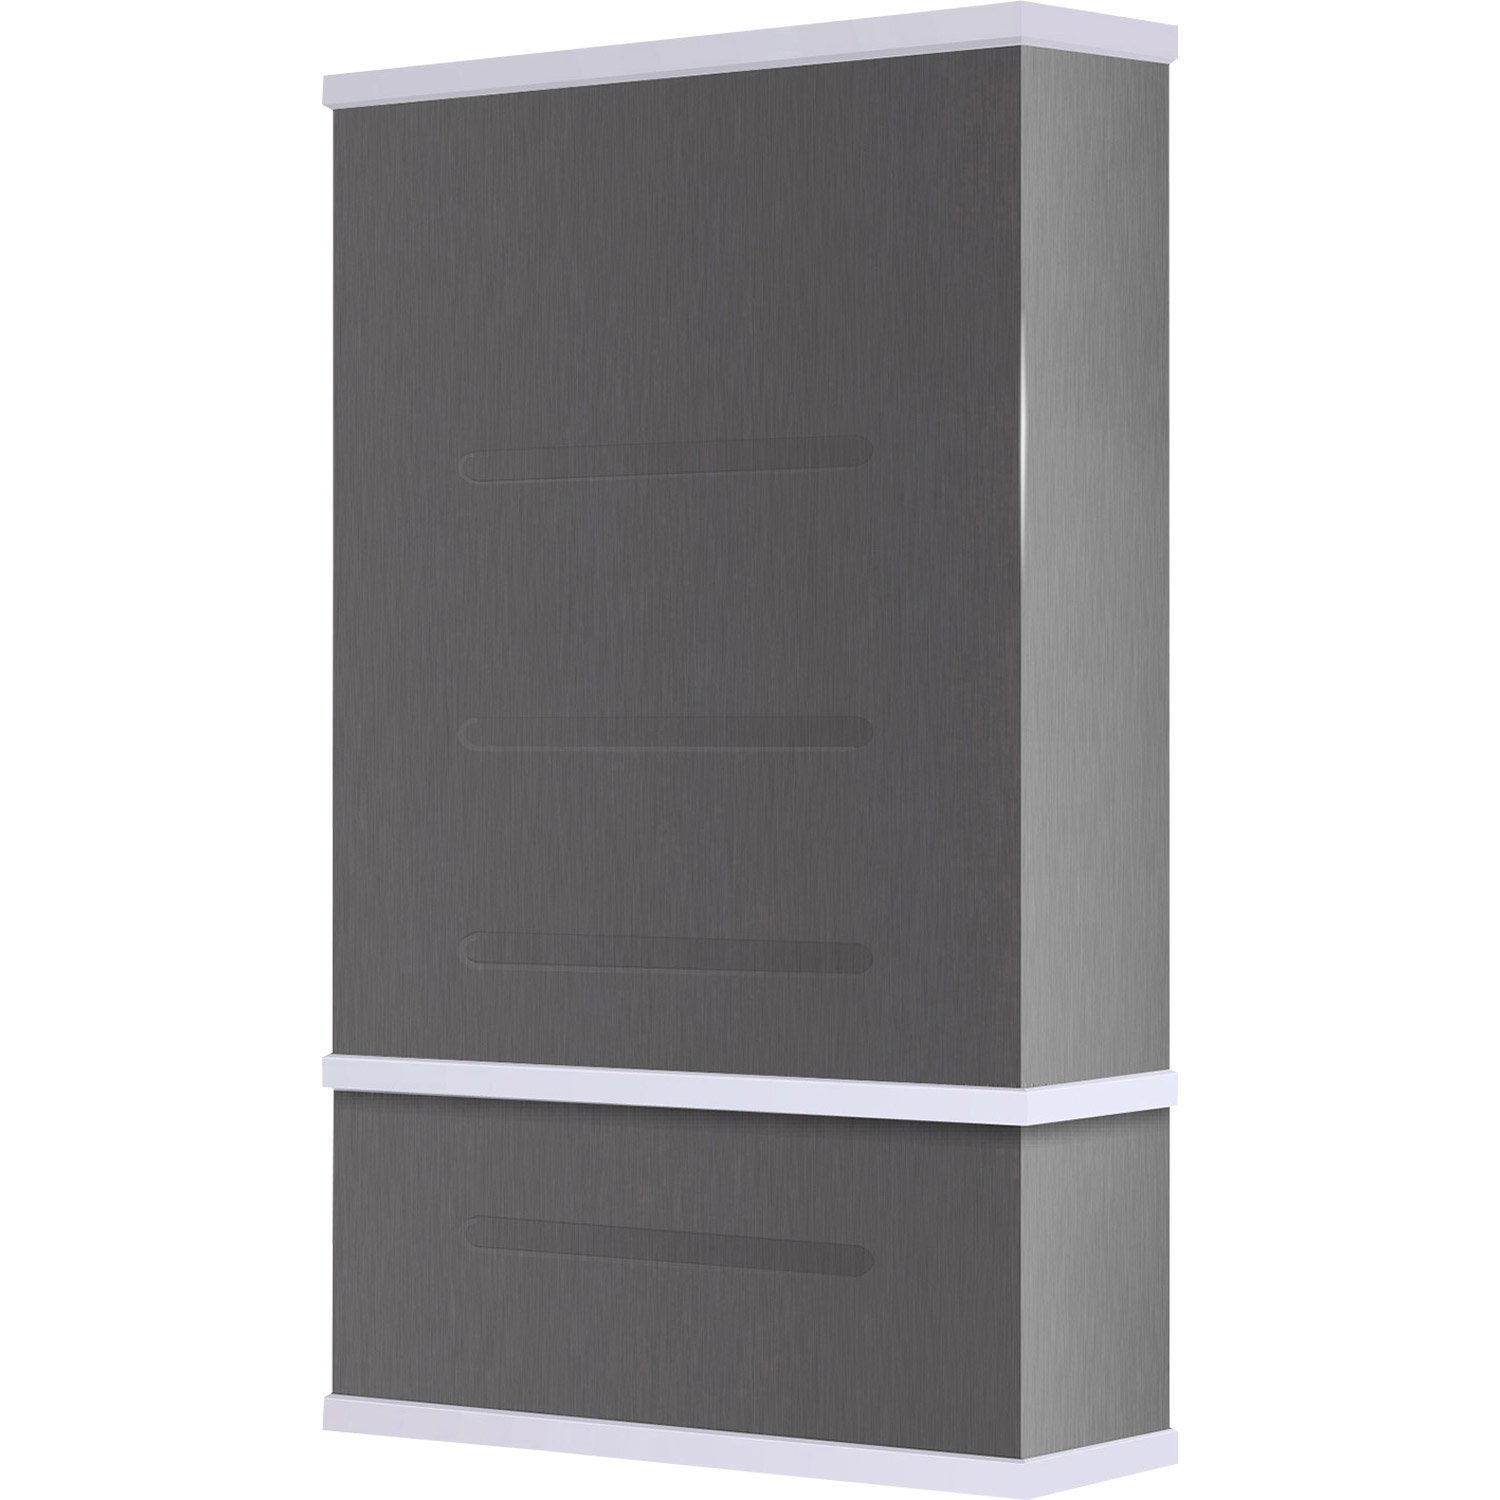 chauffe eau lectrique vertical mural waterslim wts 50 alu. Black Bedroom Furniture Sets. Home Design Ideas